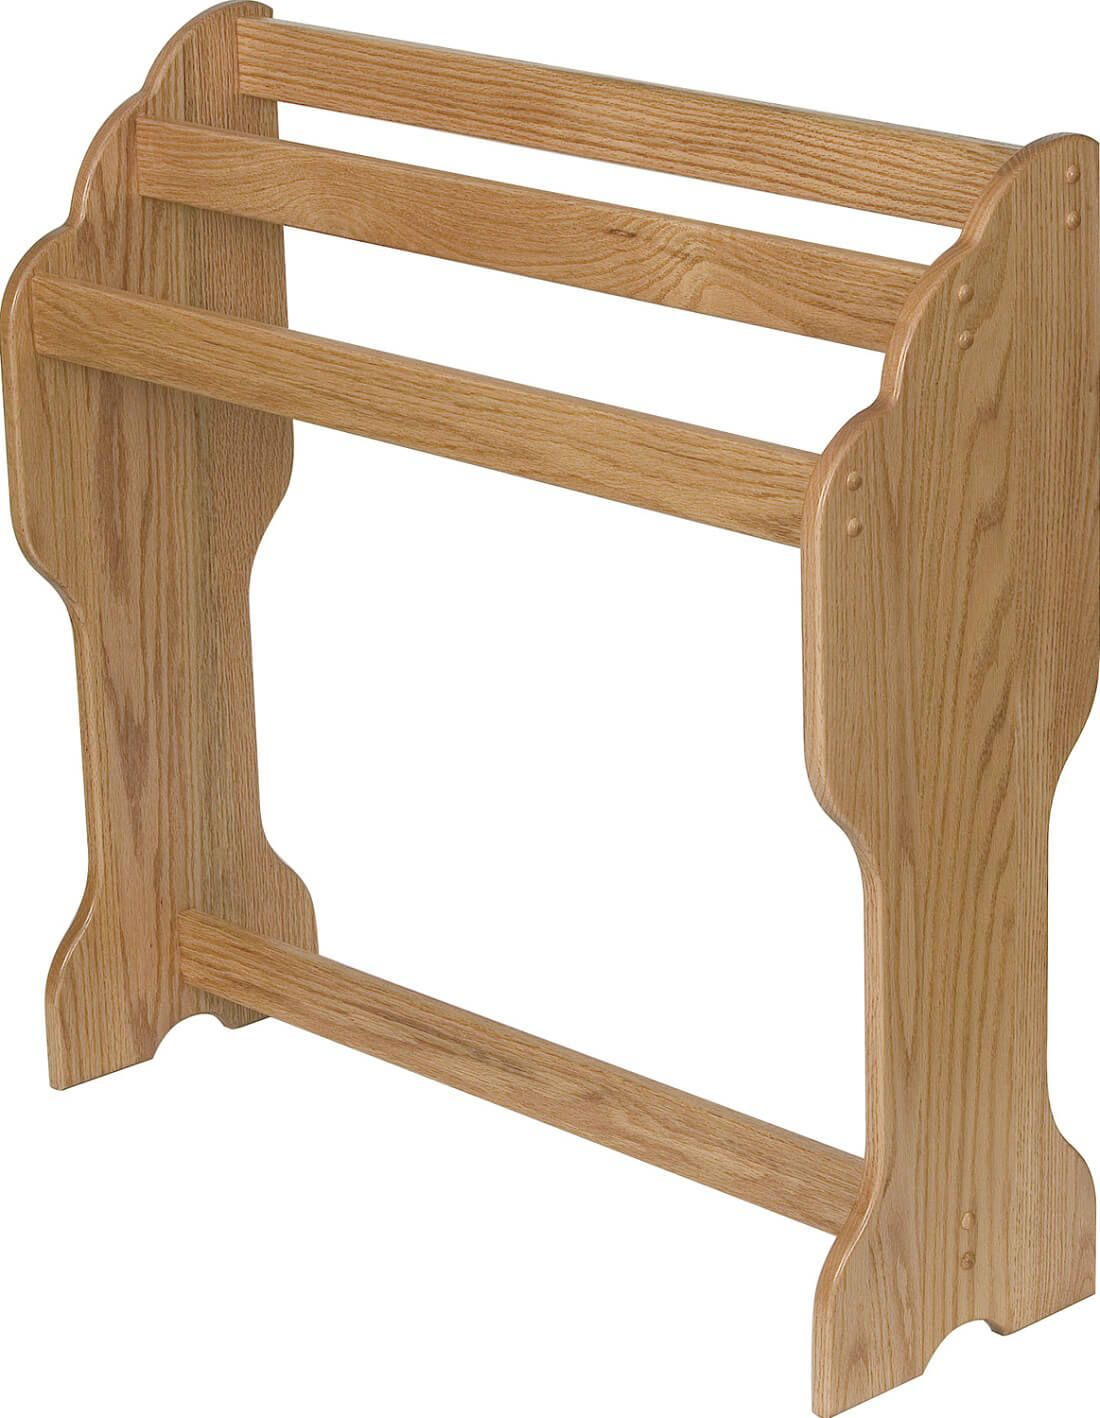 Stratton Quilt Stand in Oak